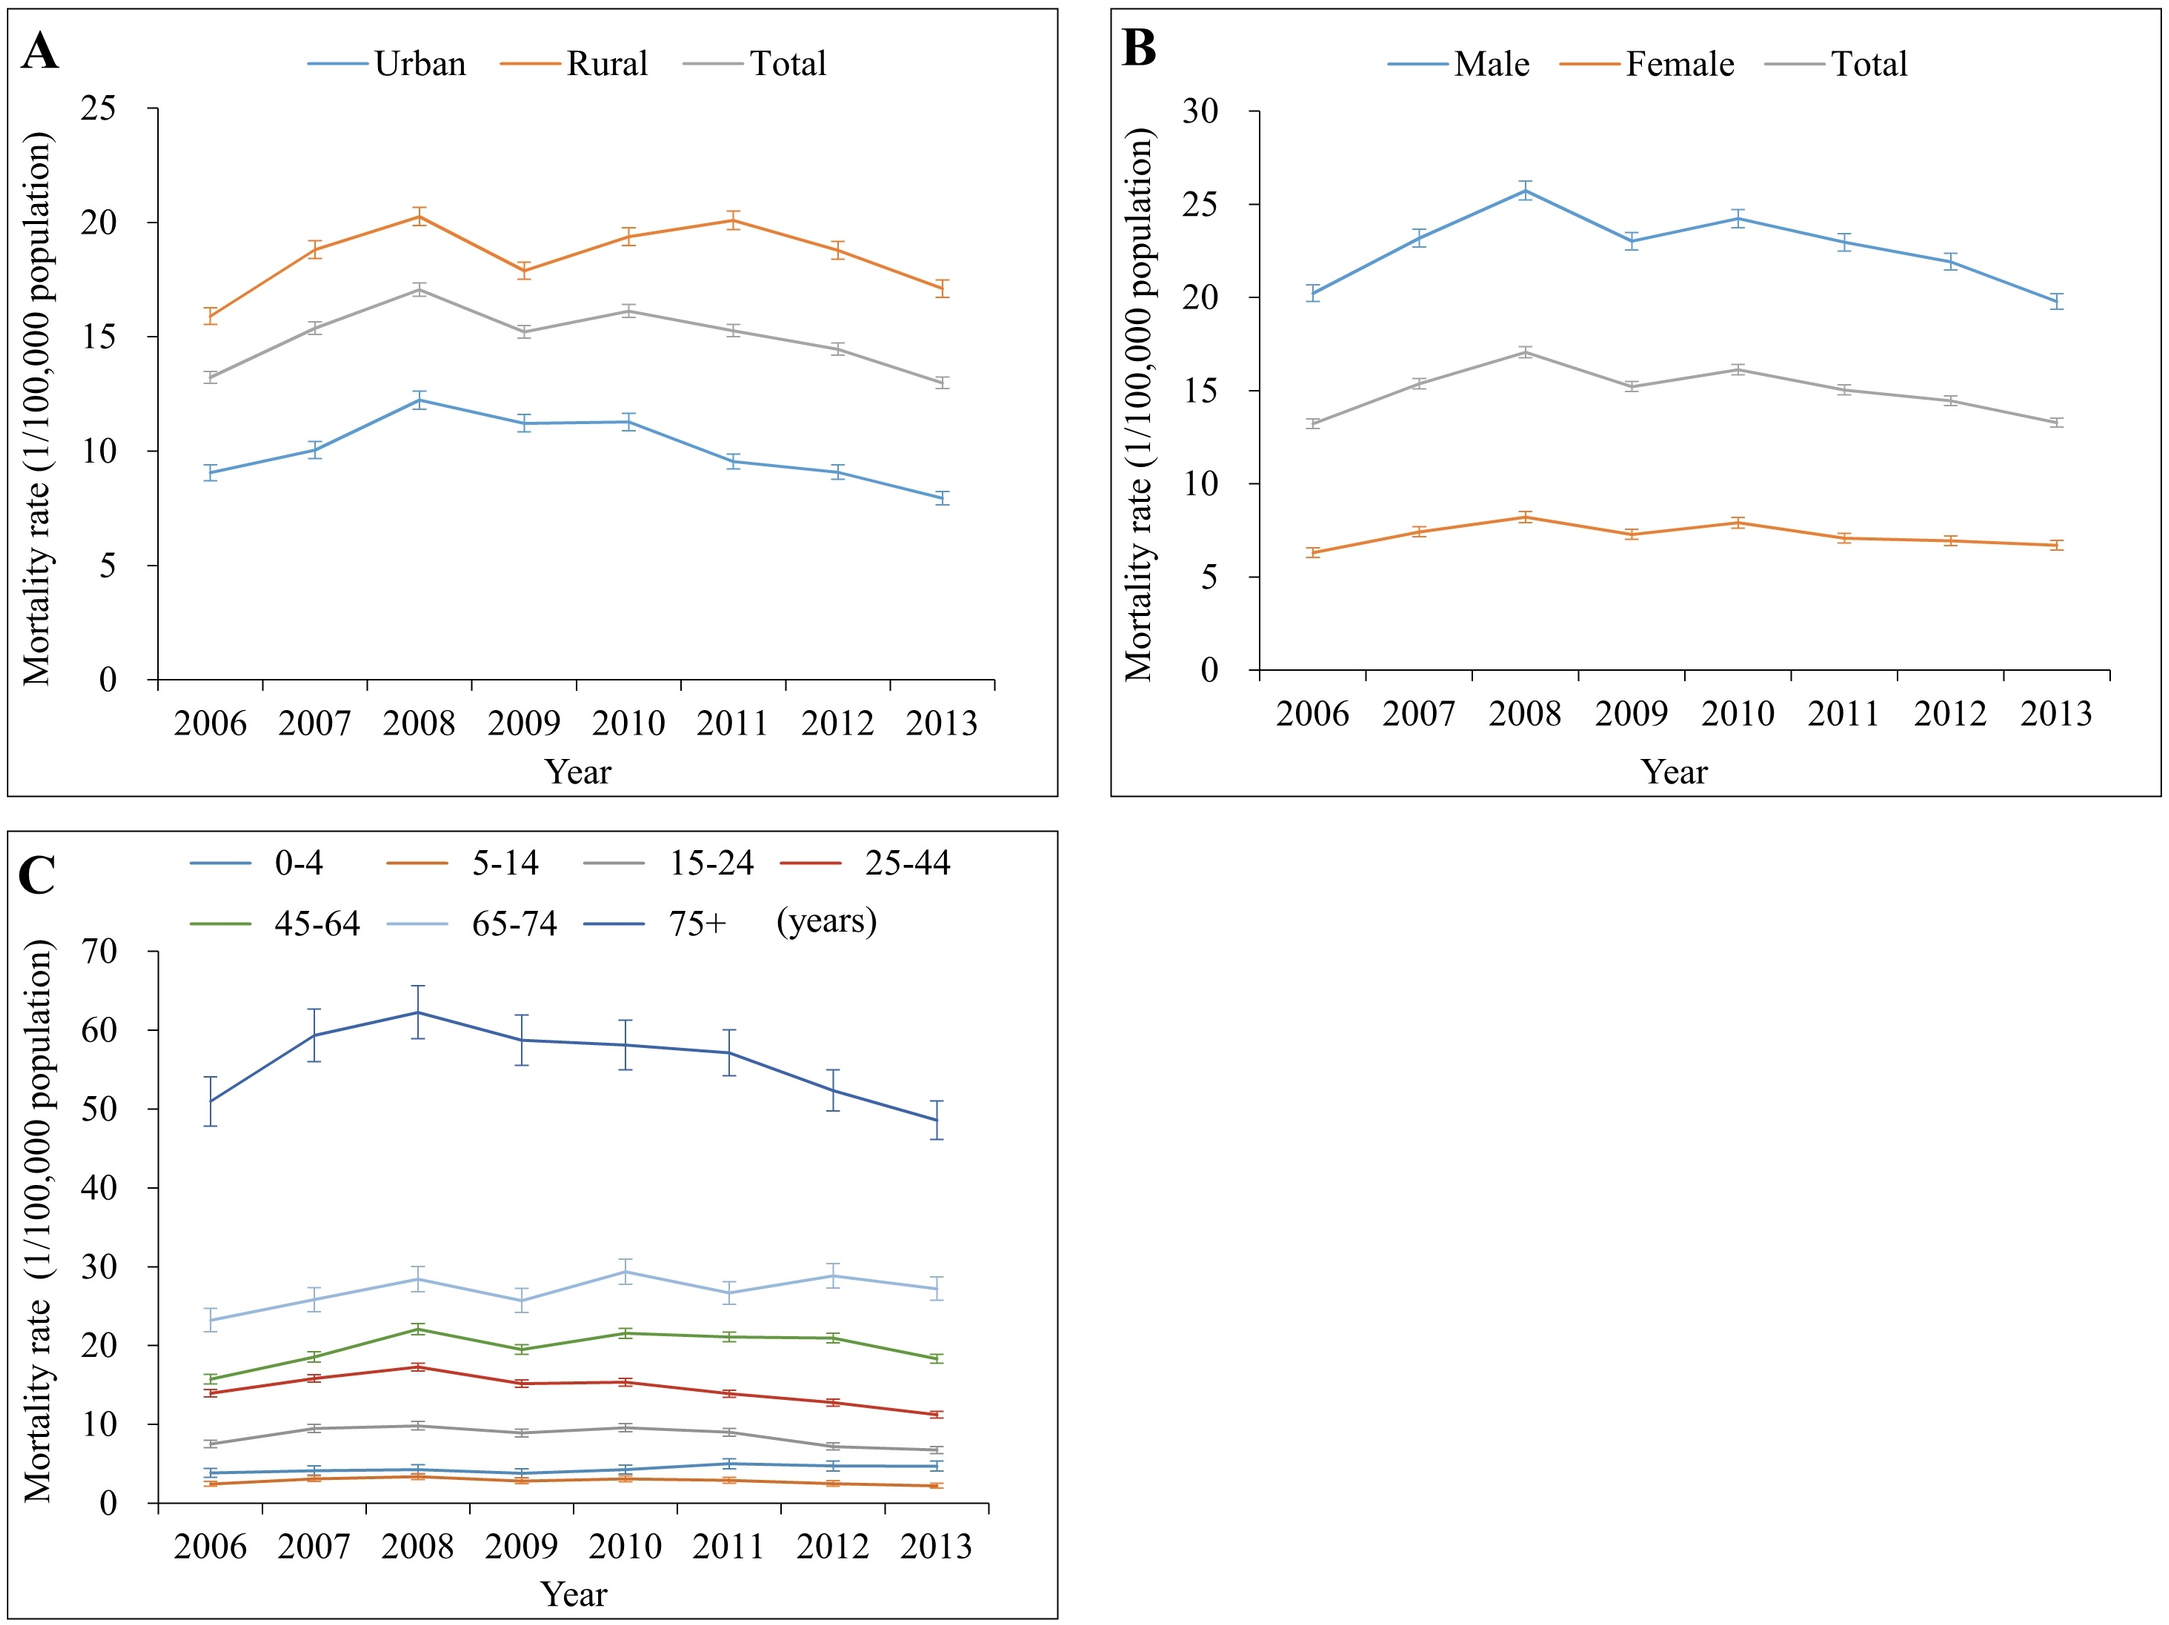 Mortality rates from traumatic brain injury by location (urban/rural), sex, and age group in China, 2006–2013.